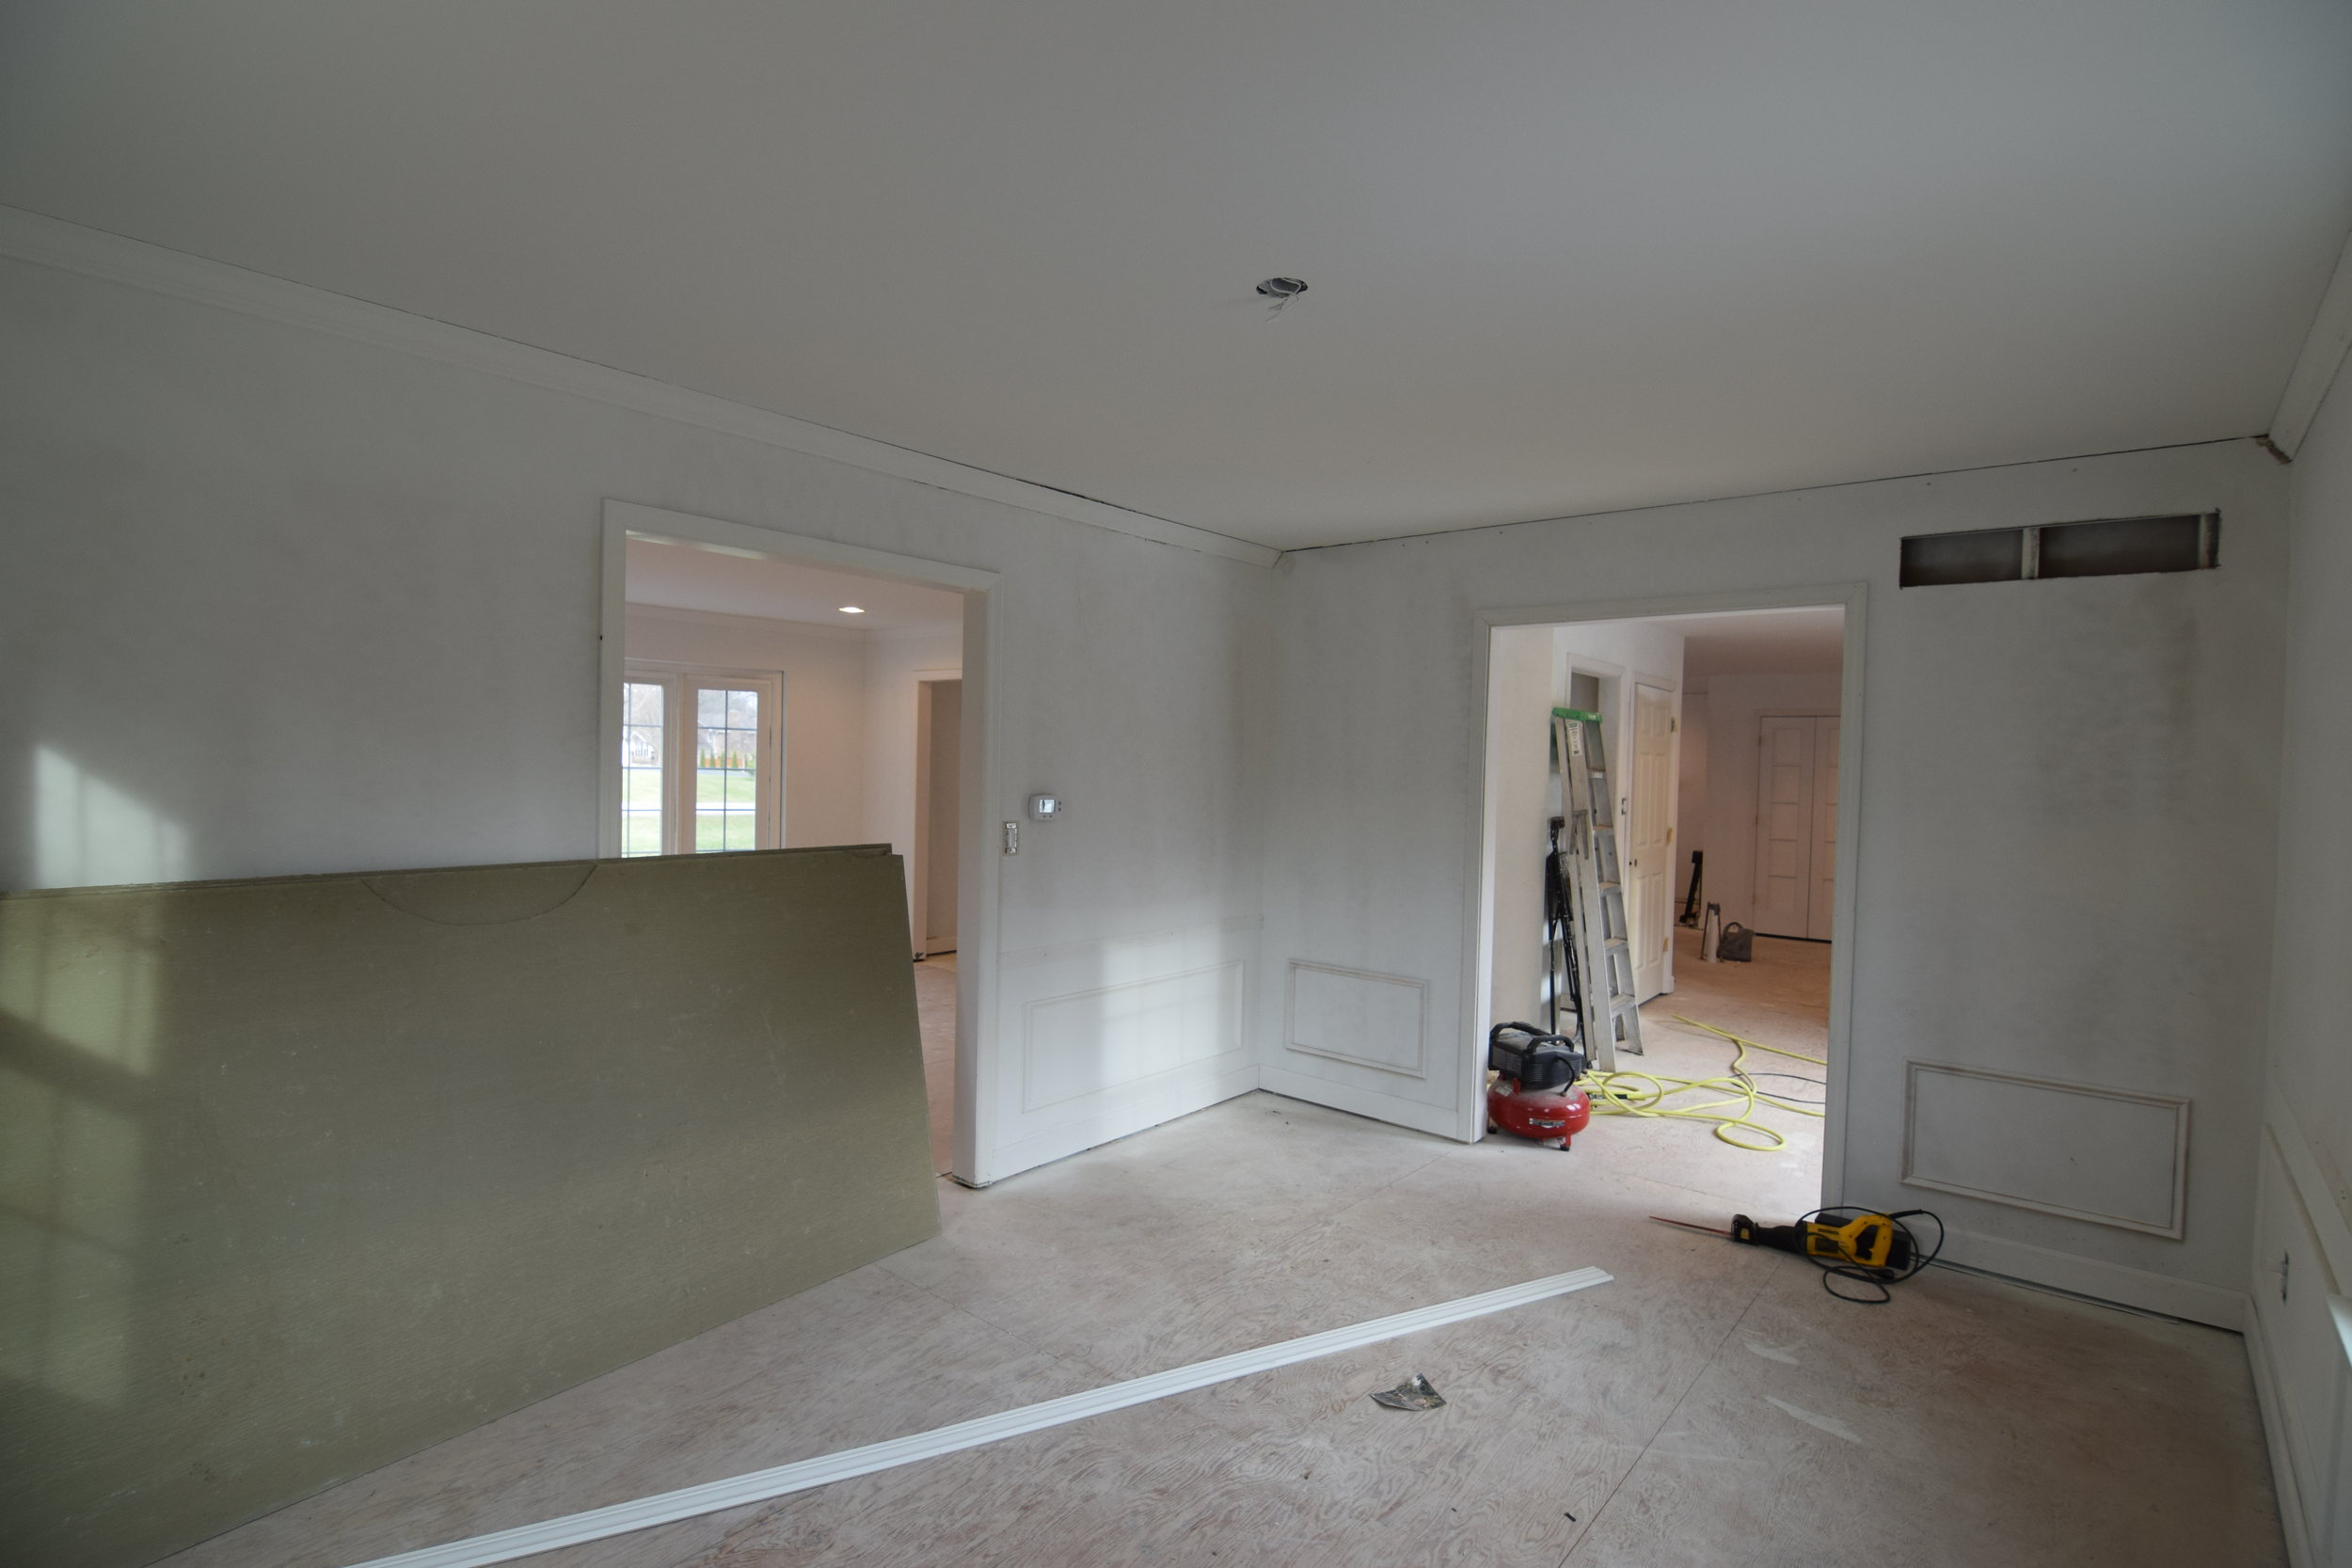 The Engagement House Dining Room Progress